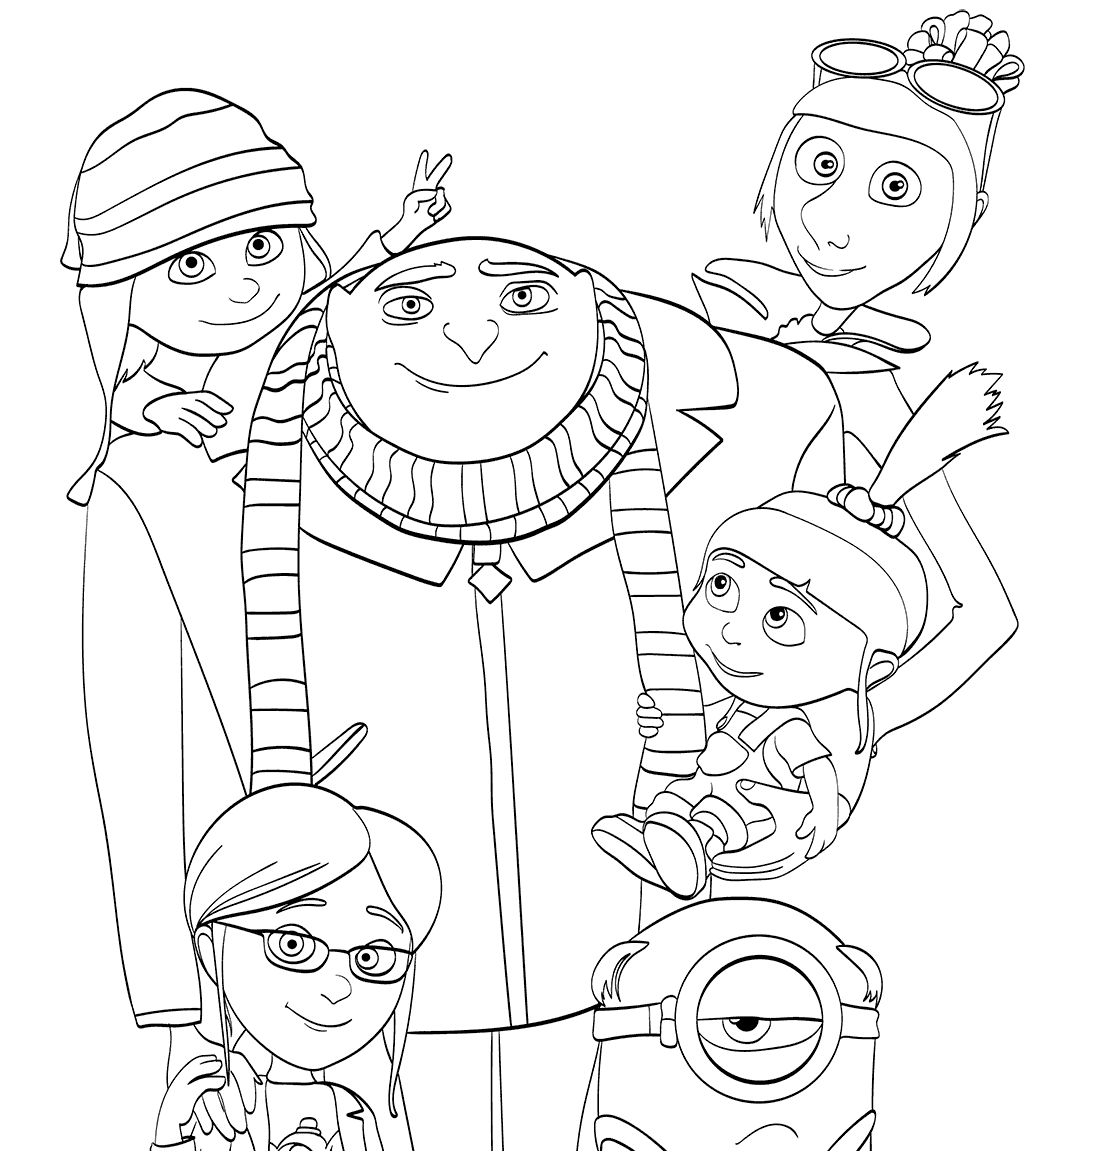 Despicable Me 3 coloring pages to download and print for free